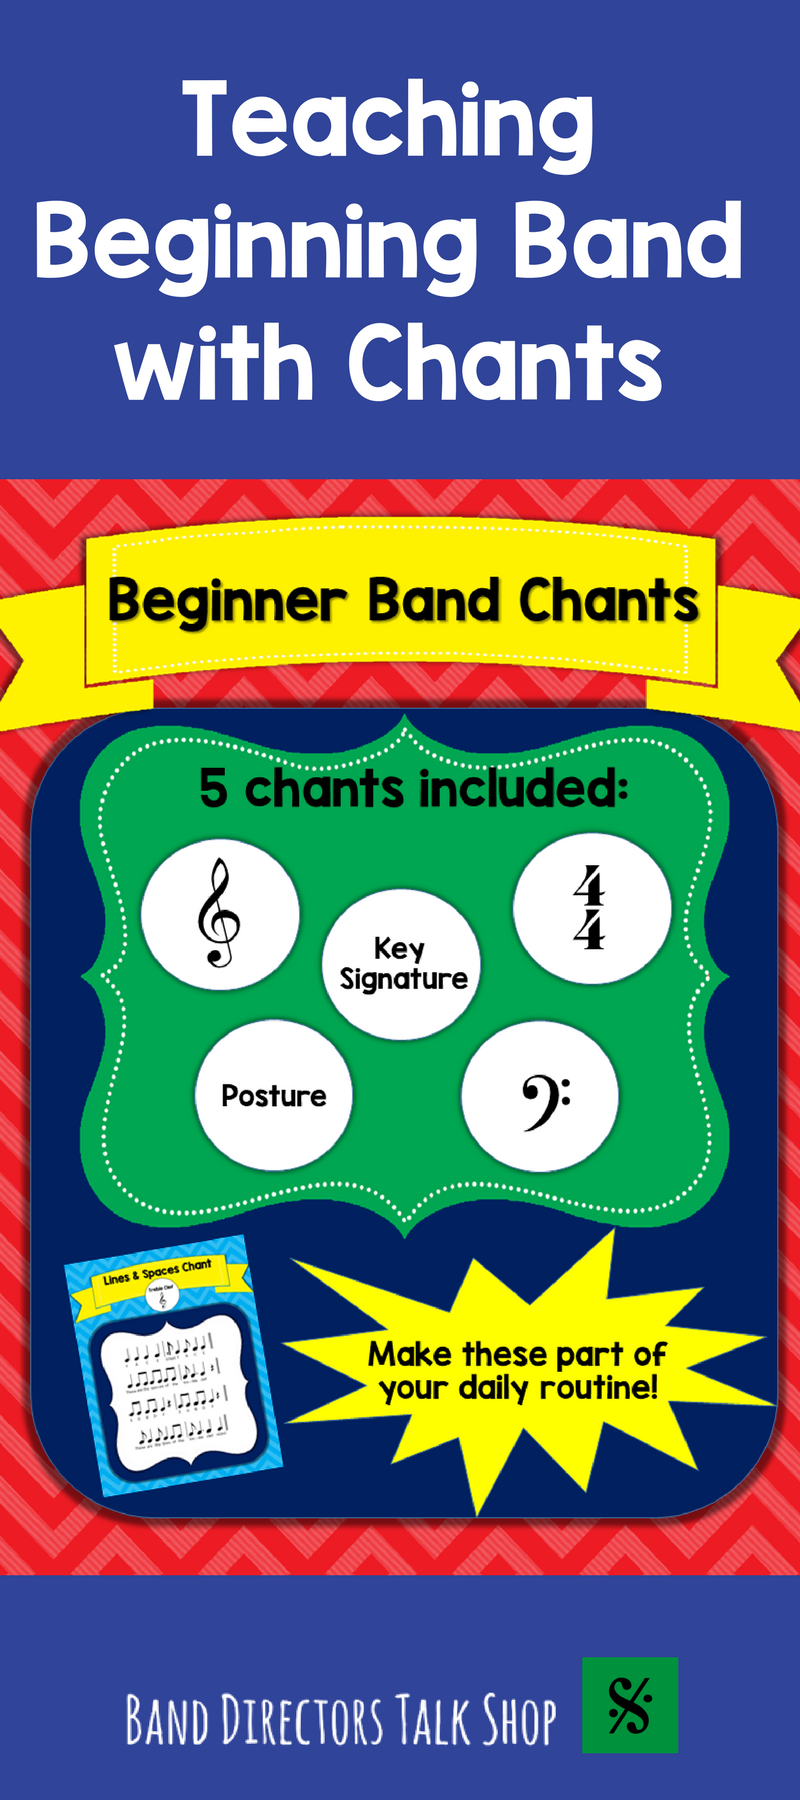 Band Chants Posture Lines Spaces Time Signature Key – Theory Worksheets for Beginning Bands